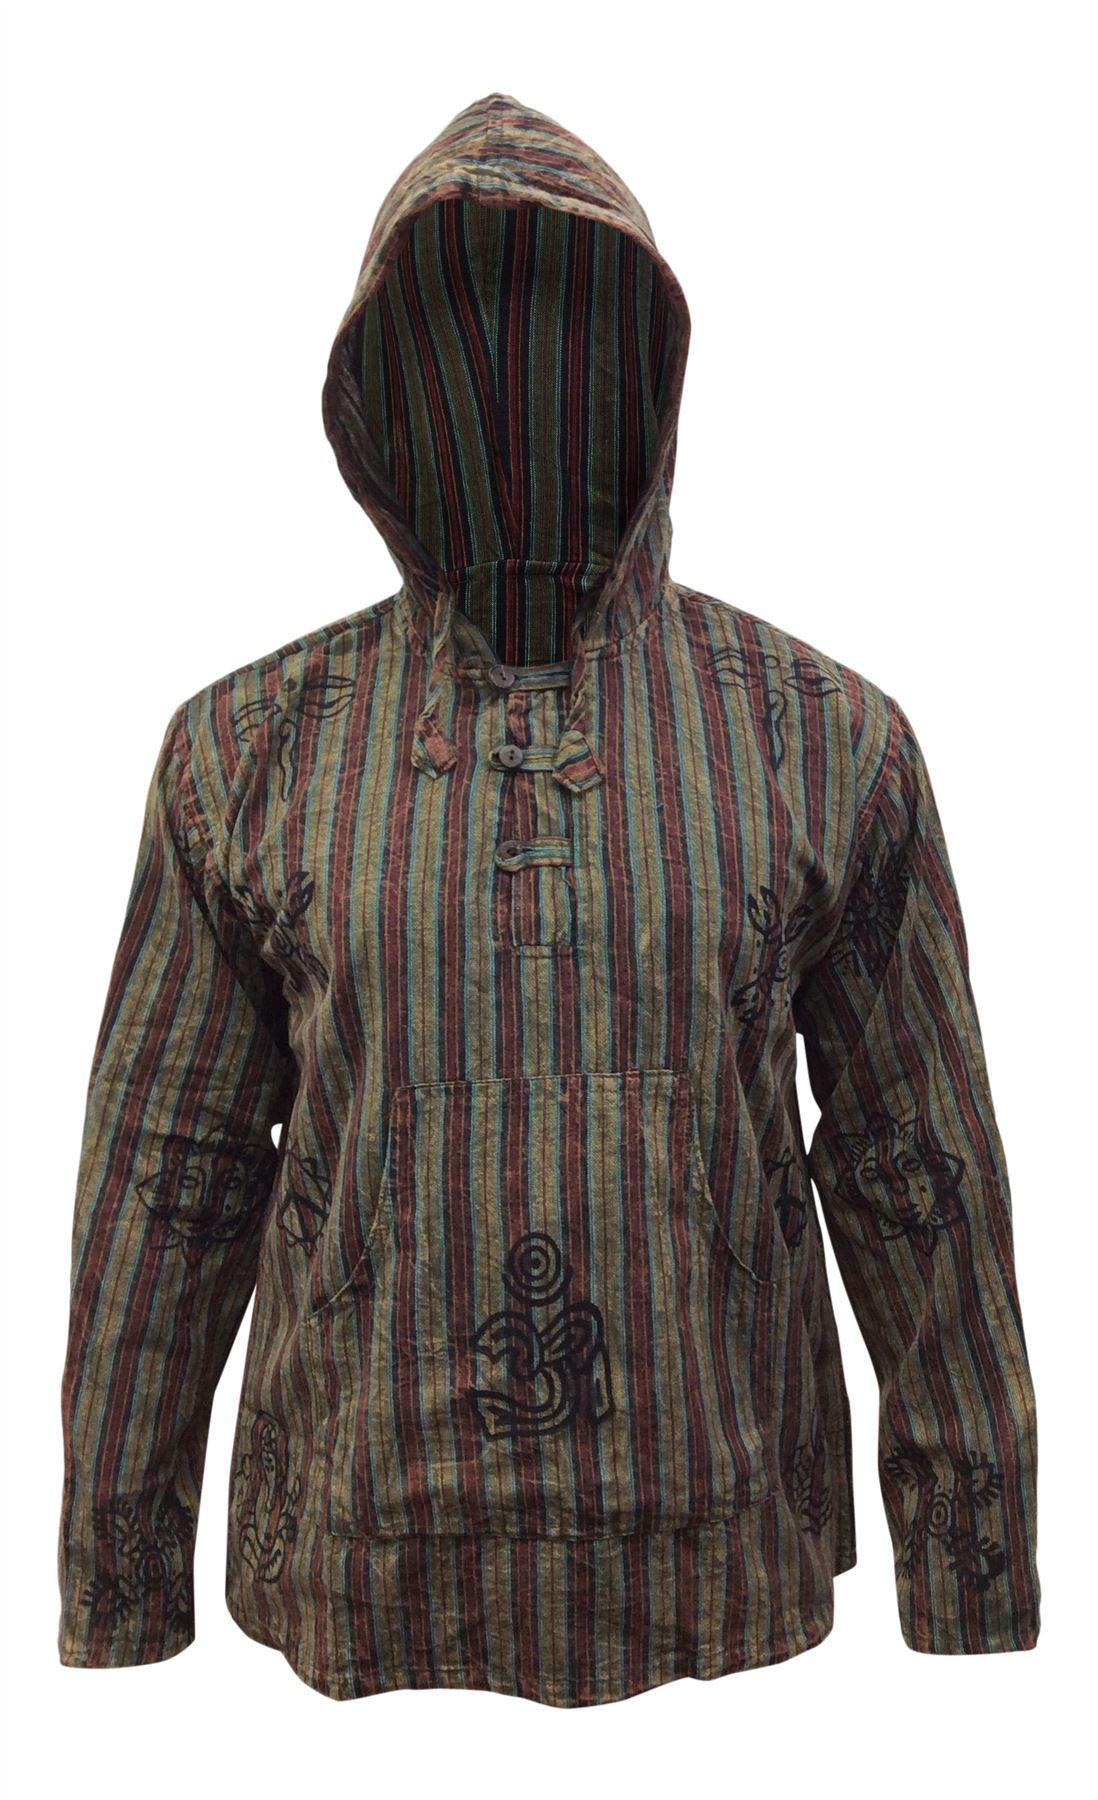 Mens-Stonewashed-Striped-Hooded-Grandad-Shirt-Long-Sleeve-Casual-Hooded-Top thumbnail 12